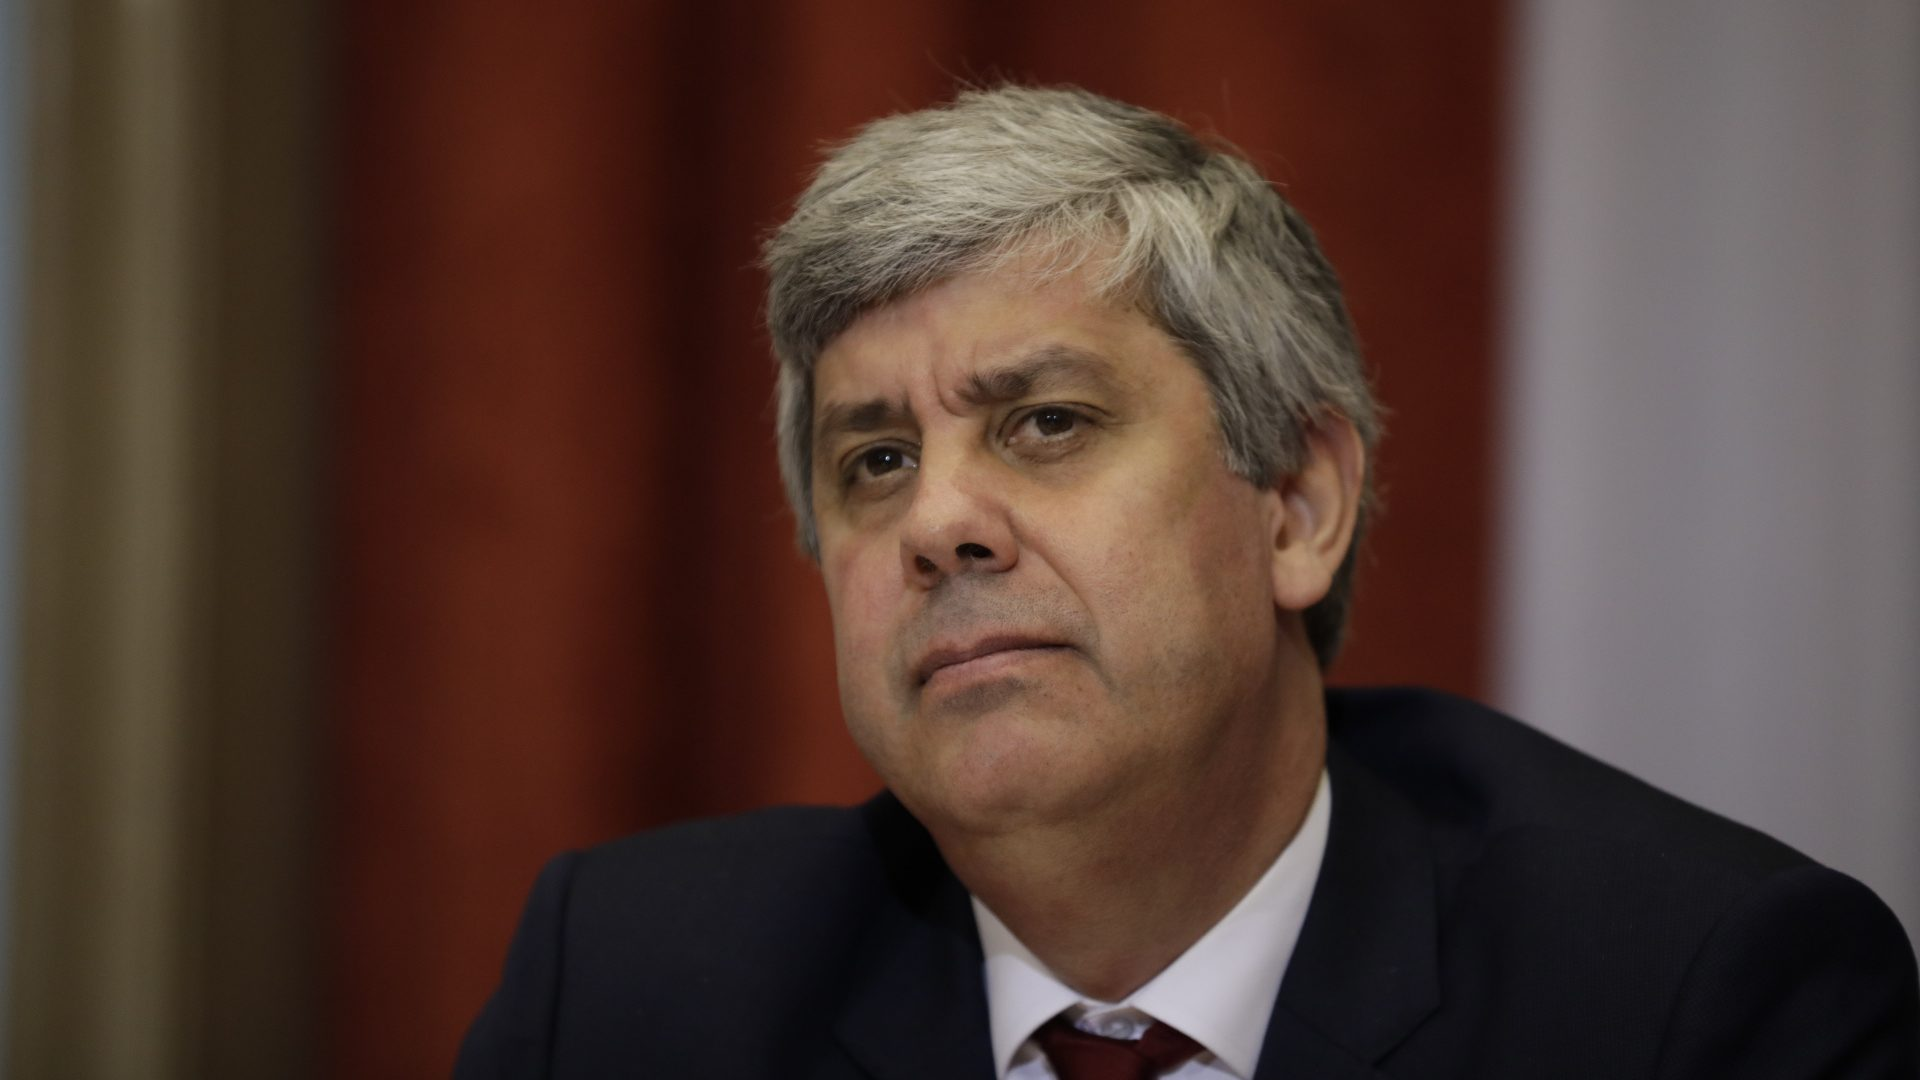 Centeno, em voz off e formato de subtexto, servido no congresso do PS